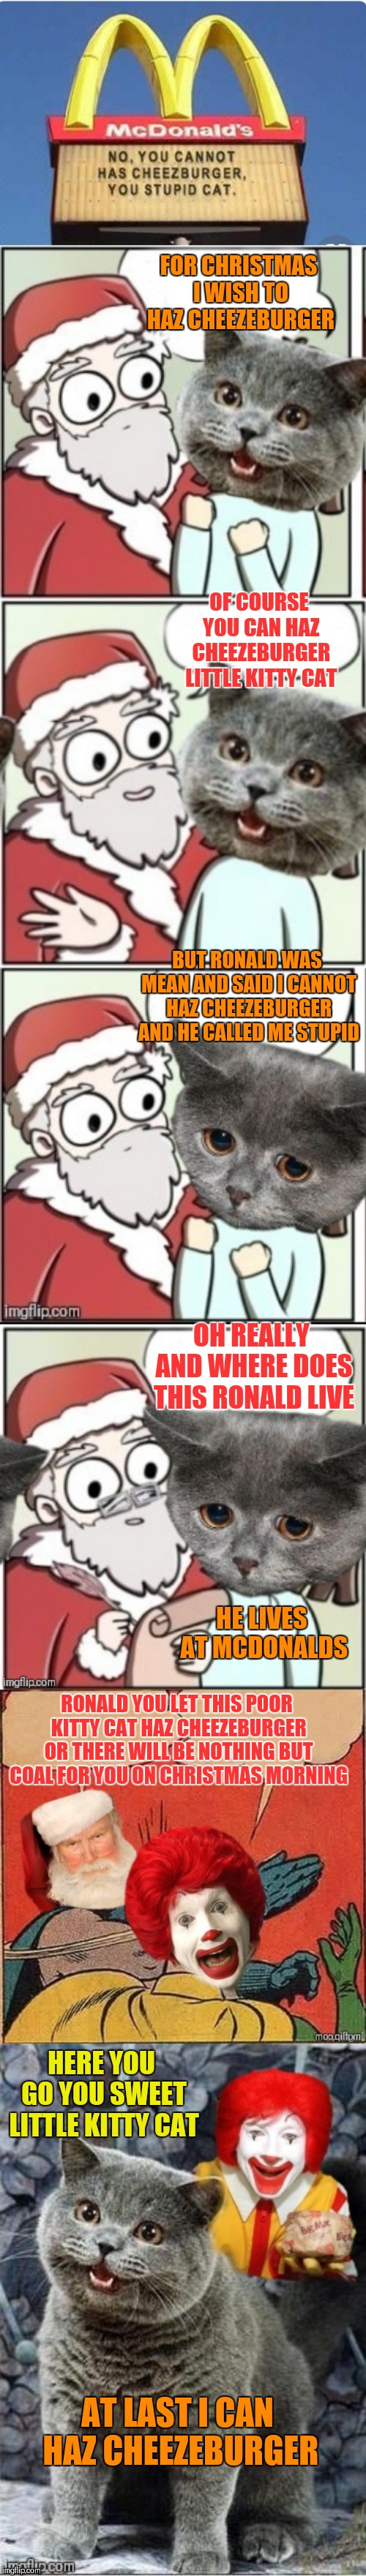 For Christmas I Want A Cheezeburger |  FOR CHRISTMAS I WISH TO HAZ CHEEZEBURGER; OF COURSE YOU CAN HAZ CHEEZEBURGER LITTLE KITTY CAT; BUT RONALD WAS MEAN AND SAID I CANNOT HAZ CHEEZEBURGER AND HE CALLED ME STUPID; OH REALLY AND WHERE DOES THIS RONALD LIVE; HE LIVES AT MCDONALDS; RONALD YOU LET THIS POOR KITTY CAT HAZ CHEEZEBURGER OR THERE WILL BE NOTHING BUT COAL FOR YOU ON CHRISTMAS MORNING; HERE YOU GO YOU SWEET LITTLE KITTY CAT; AT LAST I CAN HAZ CHEEZEBURGER | image tagged in memes,funny,for christmas i want a dragon,i can has cheezburger cat,batman slapping robin,mcdonalds | made w/ Imgflip meme maker